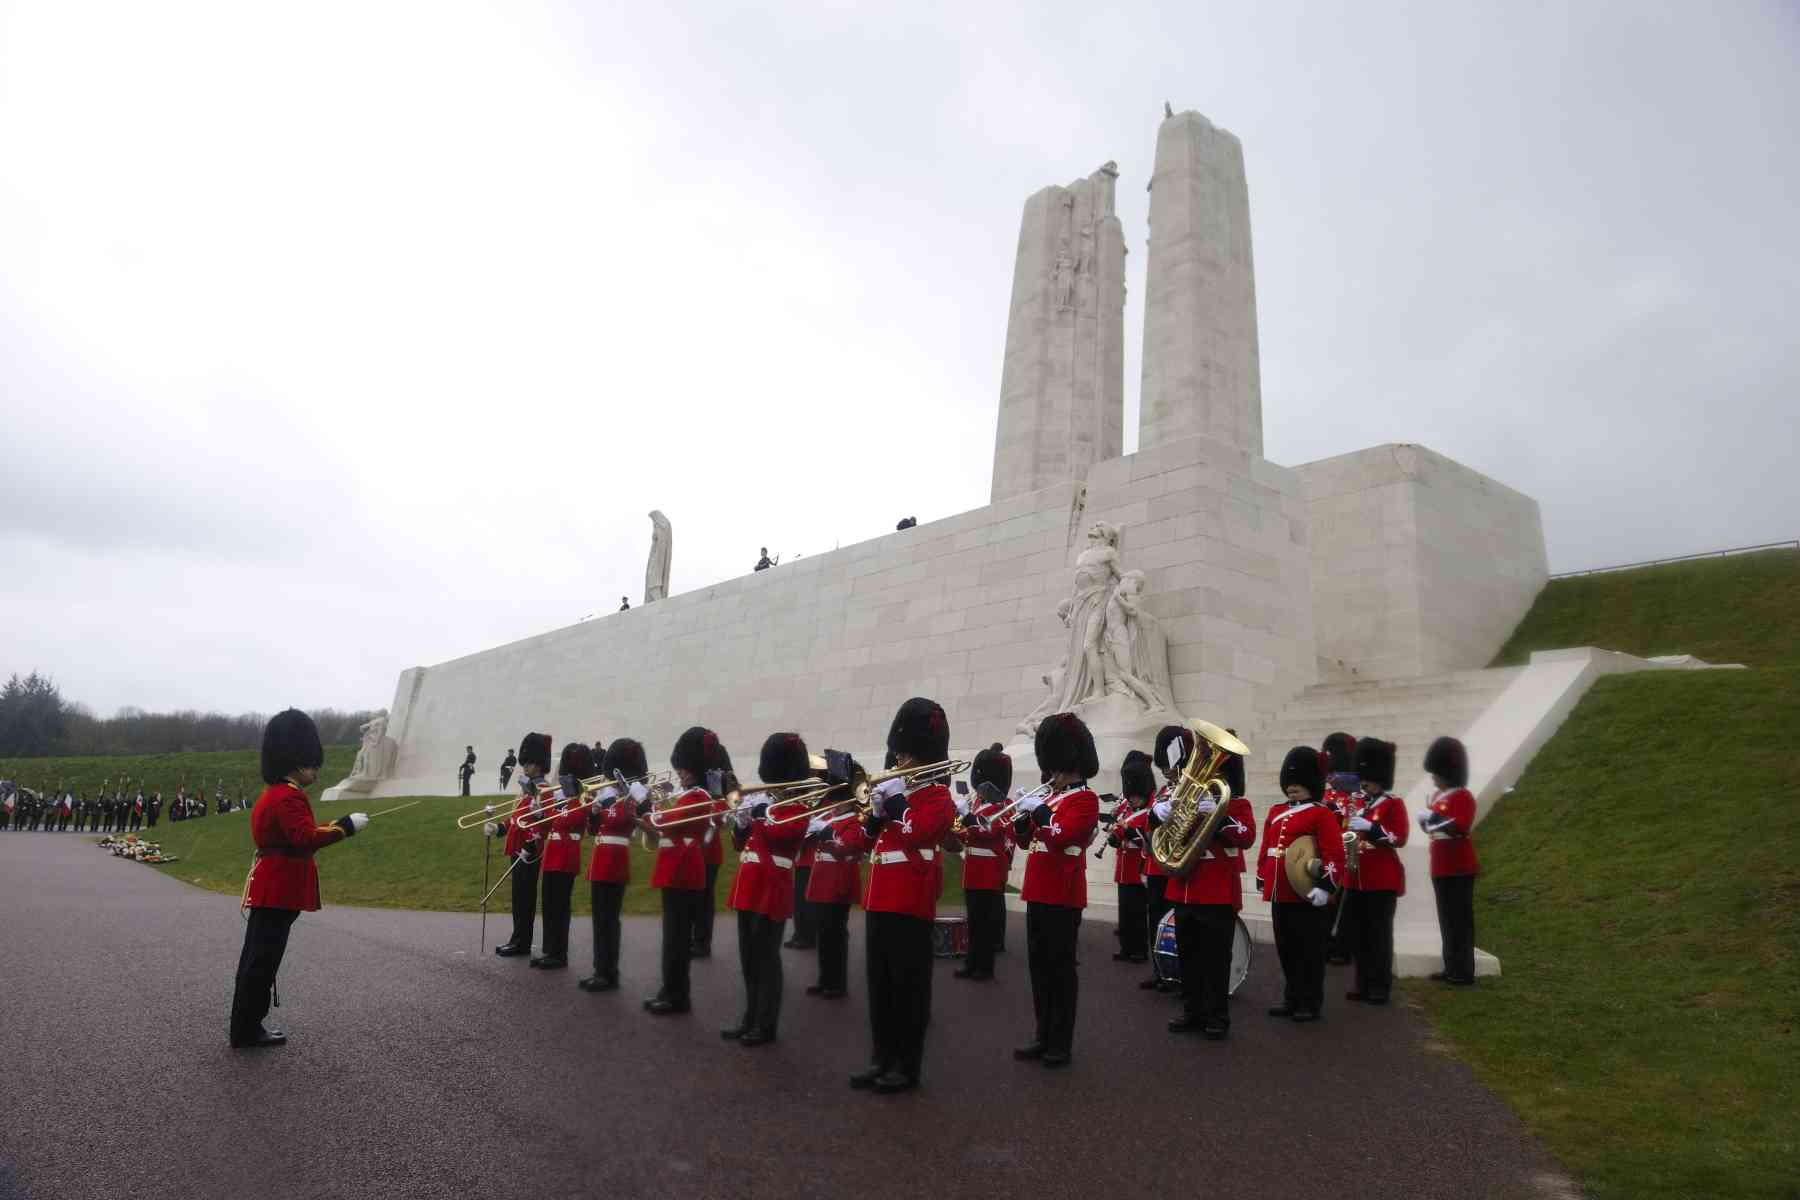 The ceremony took place at the Canadian National Vimy Memorial.